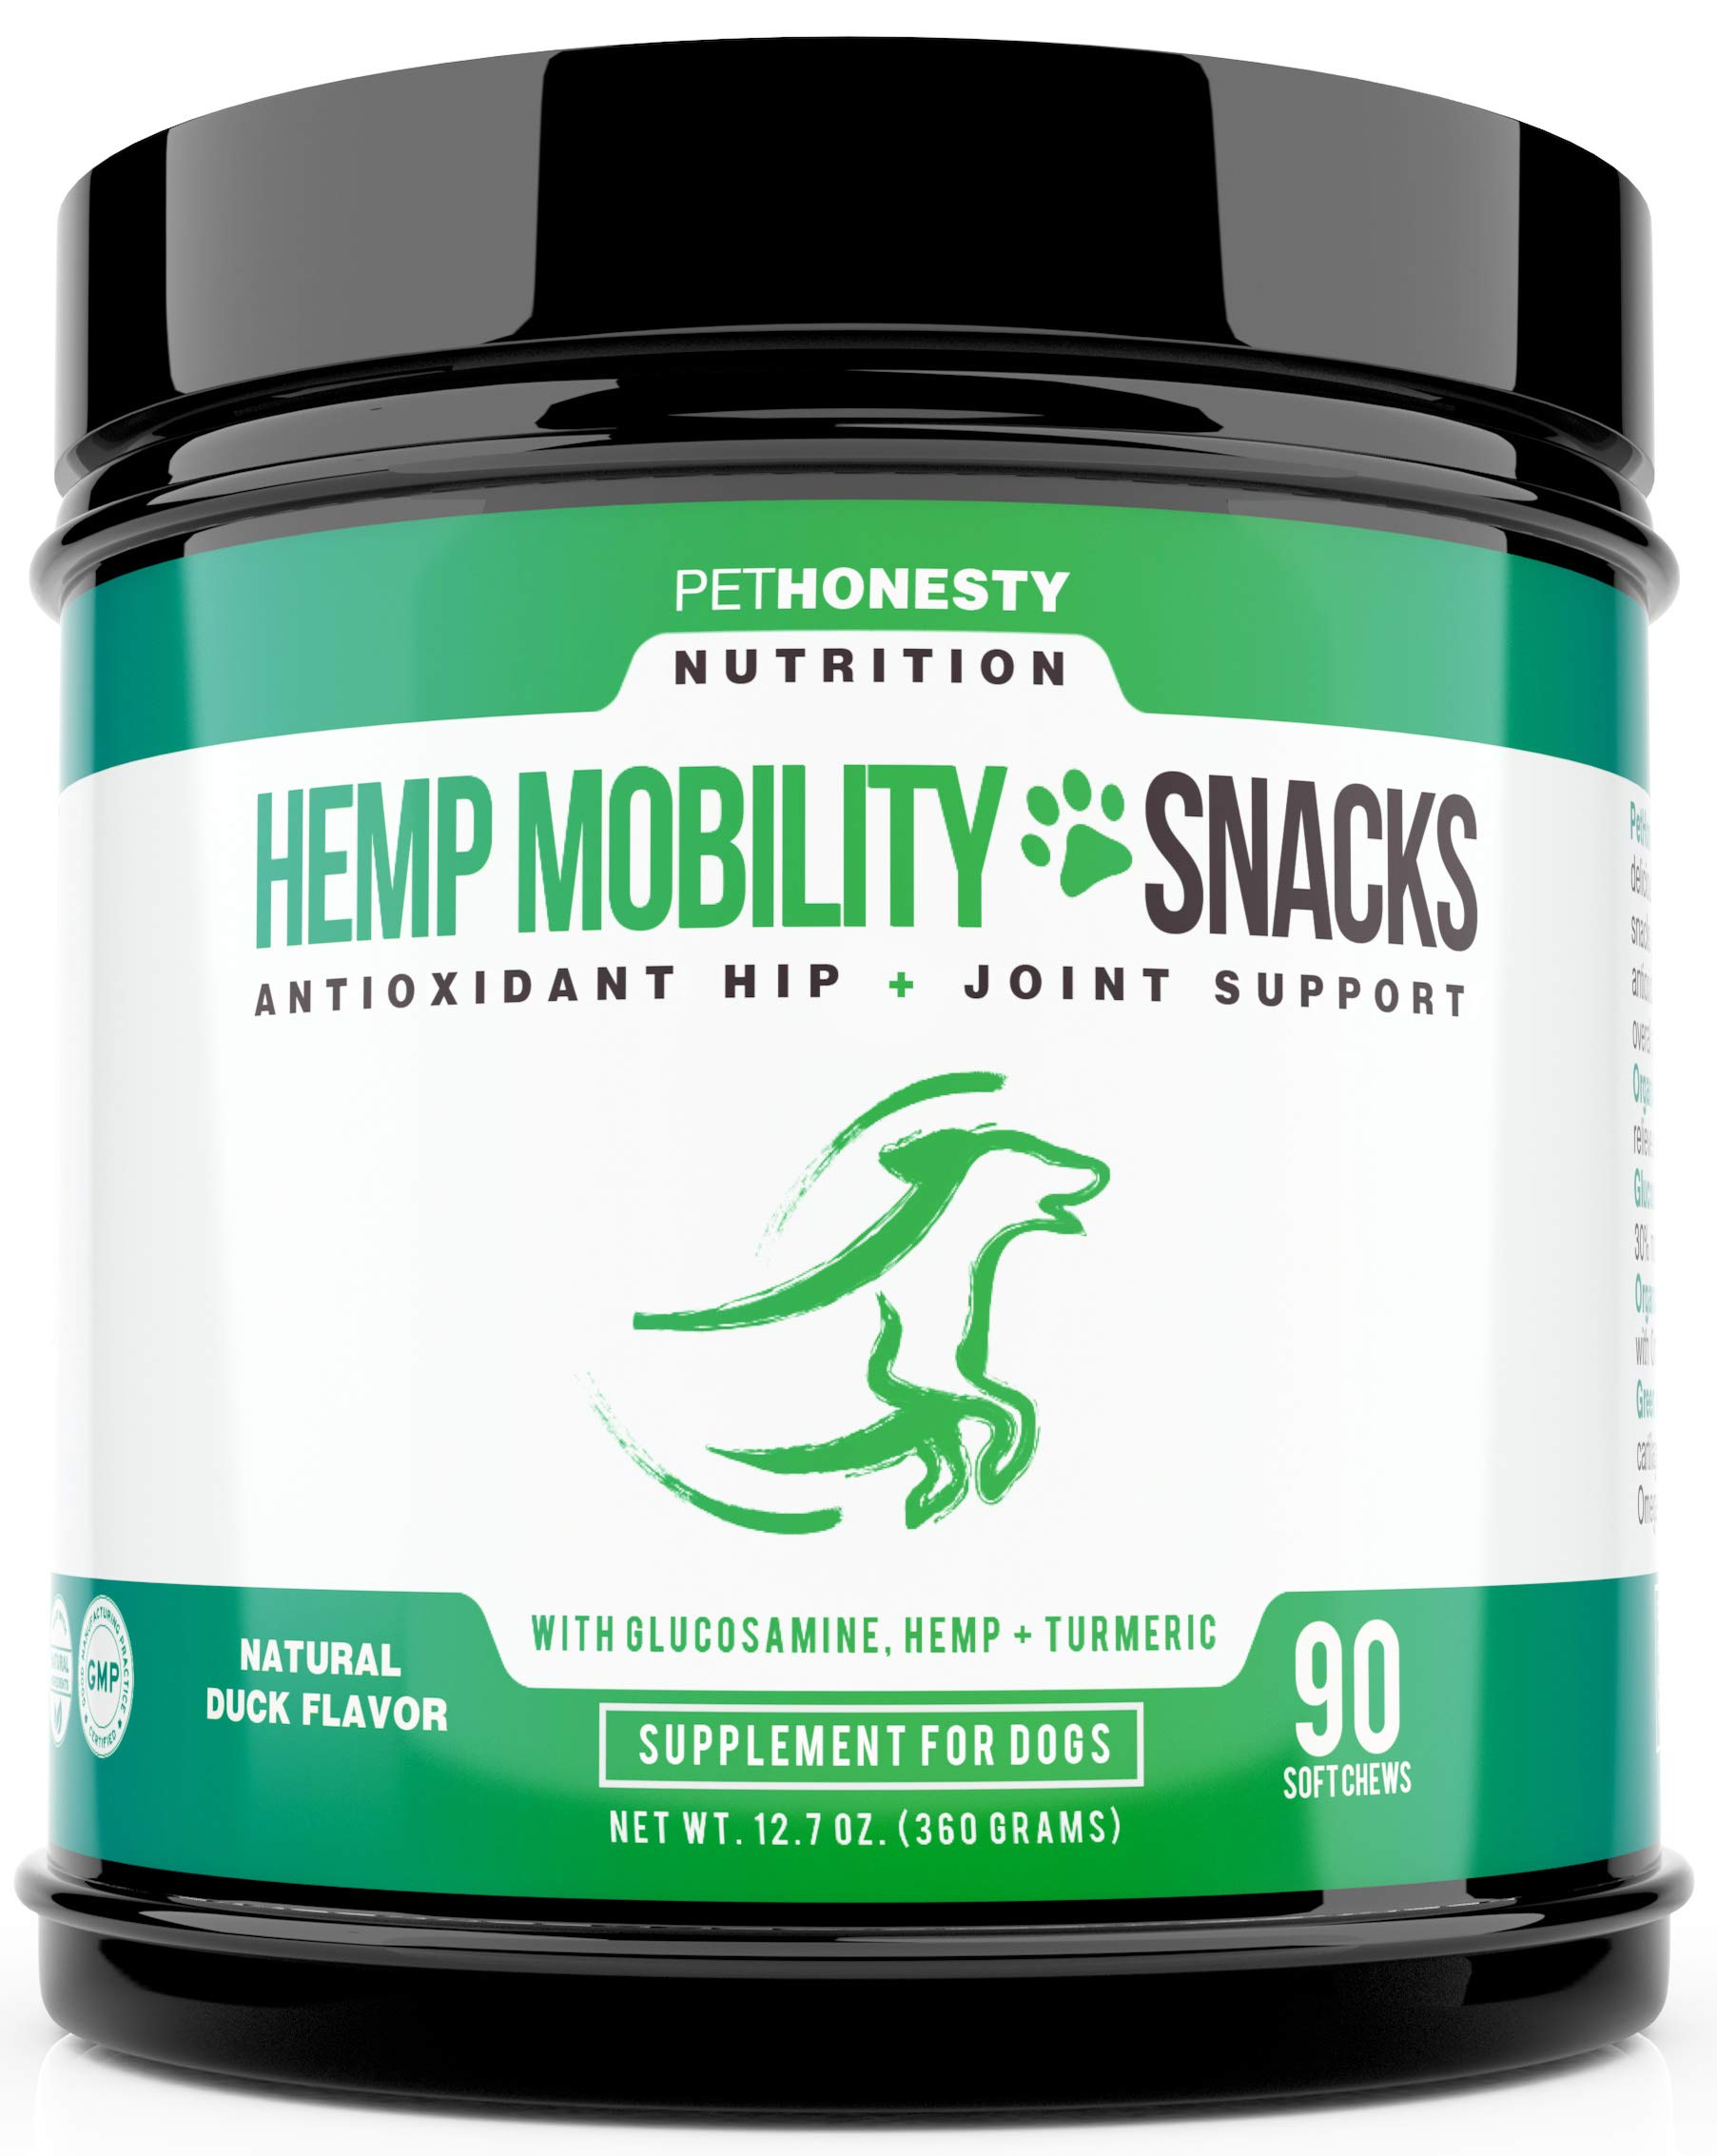 PetHonesty Antioxidant Hip and Joint Supplement for Dogs with Hemp - Glucosamine & Chondroitin, Turmeric, MSM, Green Lipped Mussel, Improve Mobility, Reduces Arthritis & Inflammation, 90 Ct